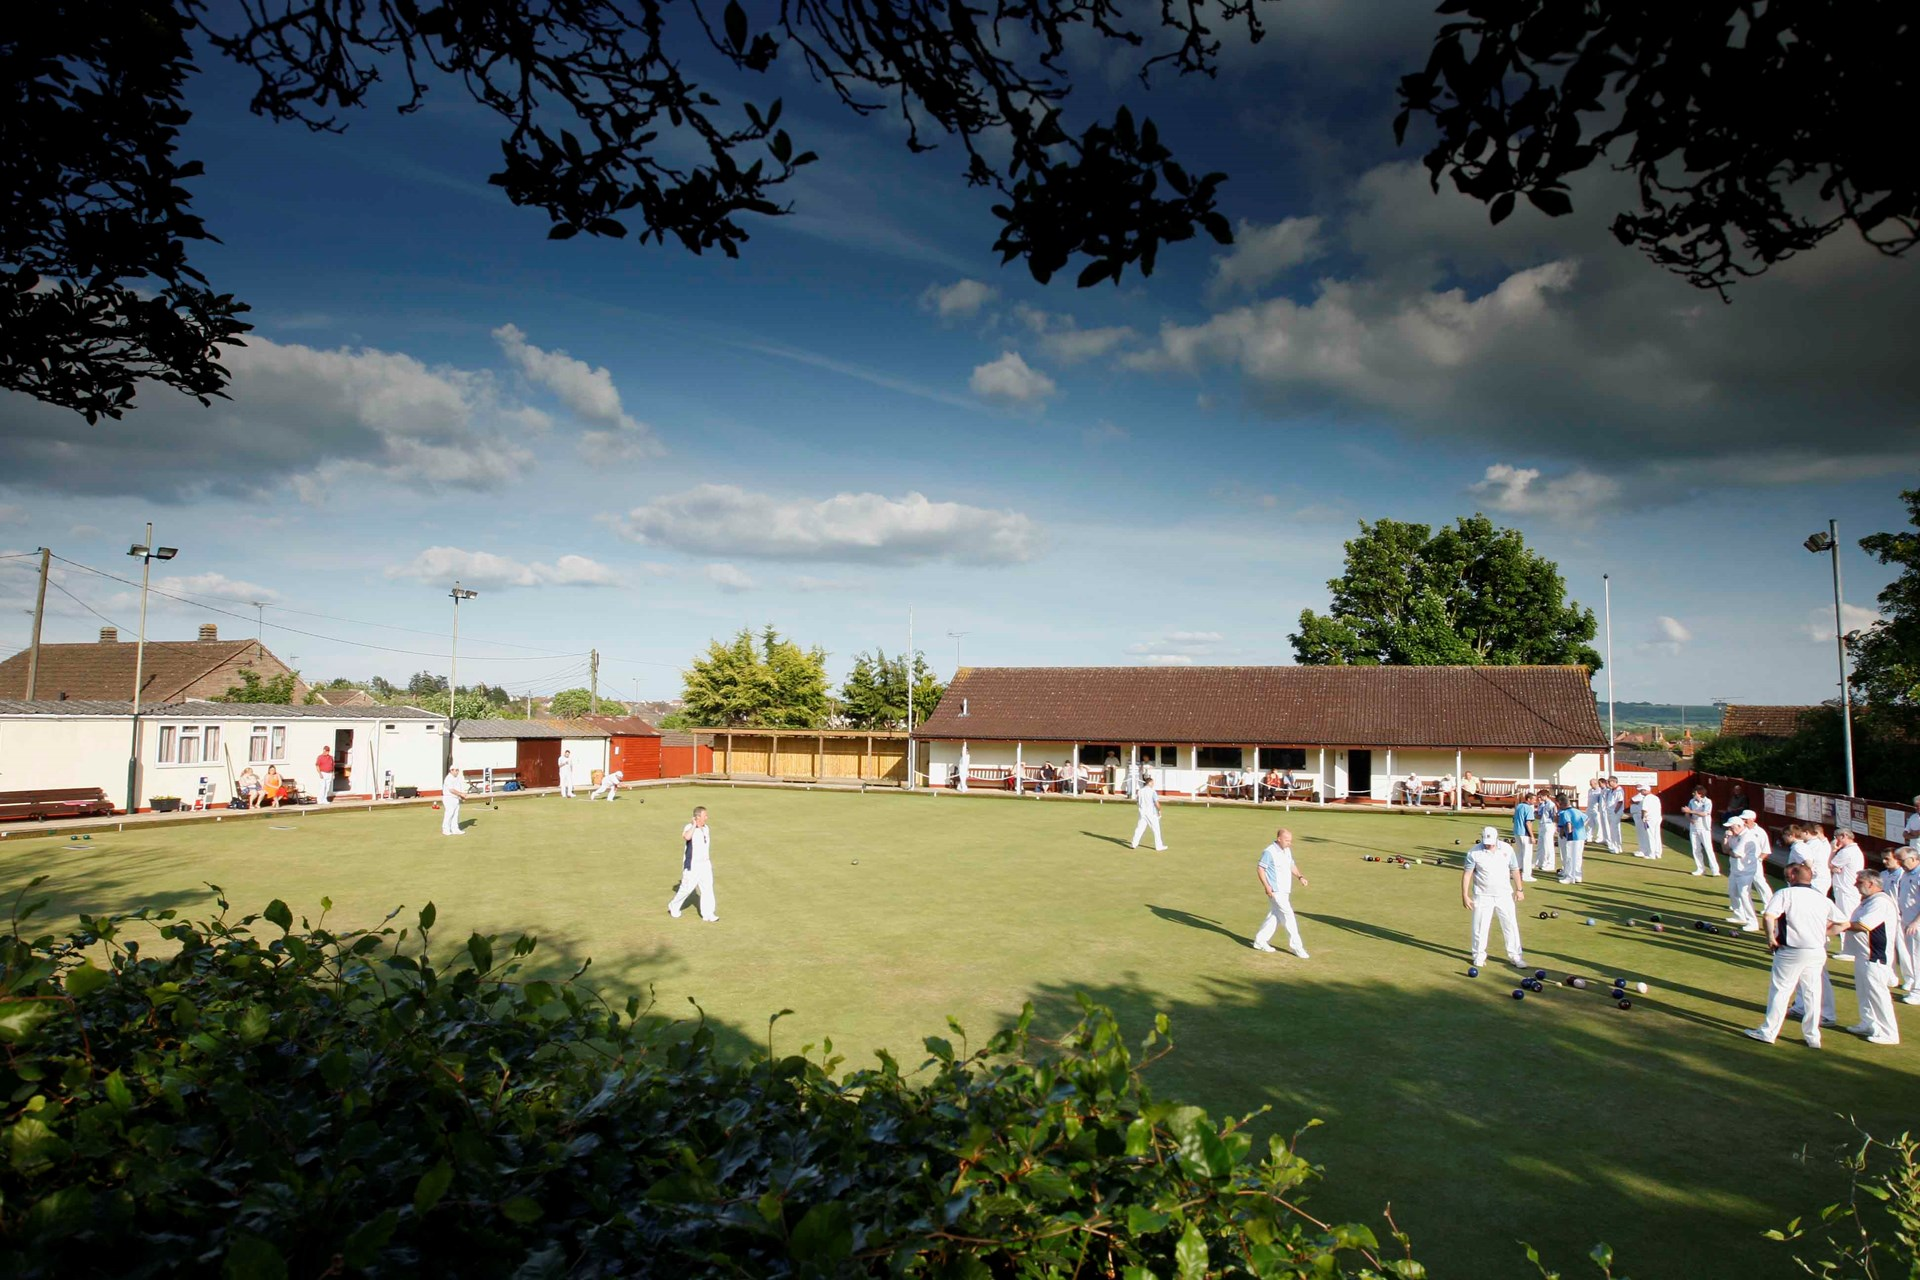 Royal Wootton Bassett Bowls Club